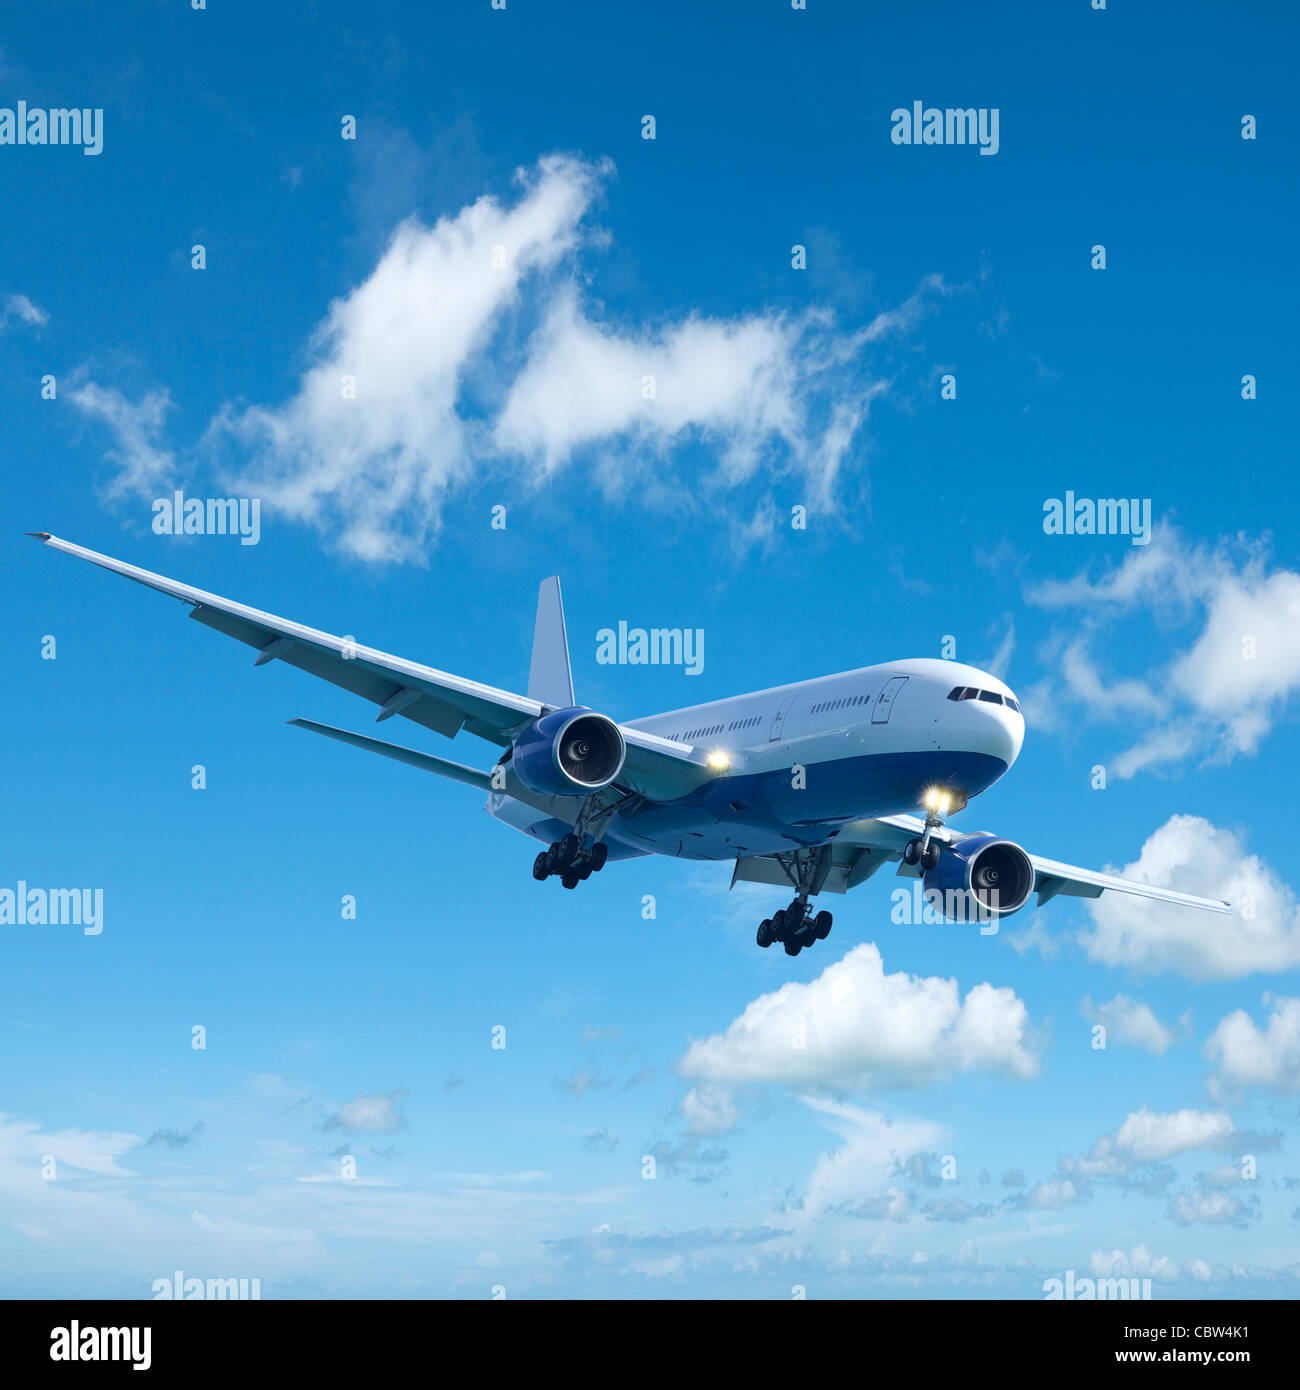 Jet plane in flight. Square composition. - Stock Image